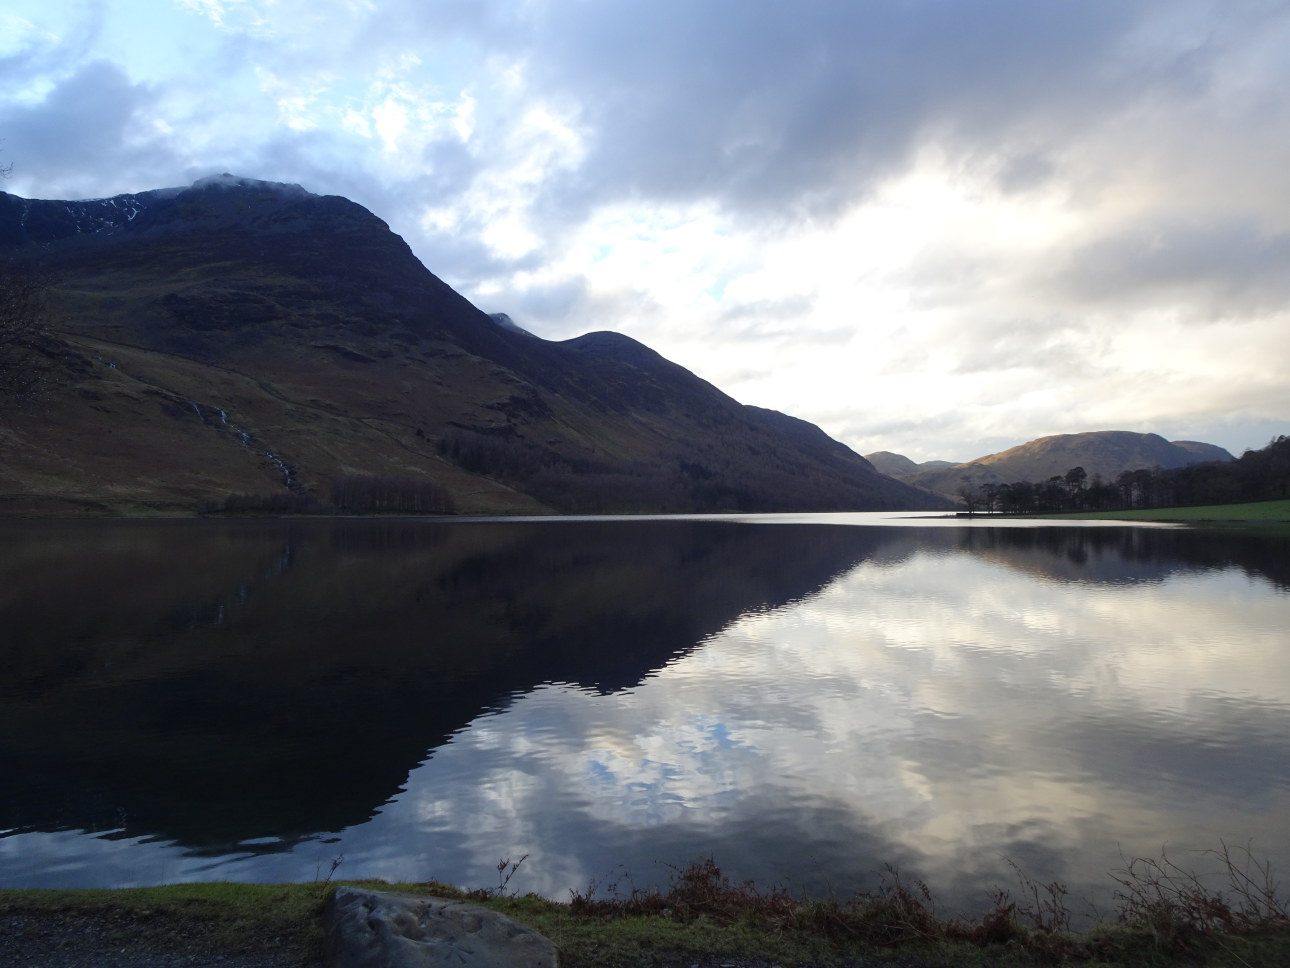 Reflections in the eye of Buttermere with High Stile black and dominant. Taken at 5:07pm.